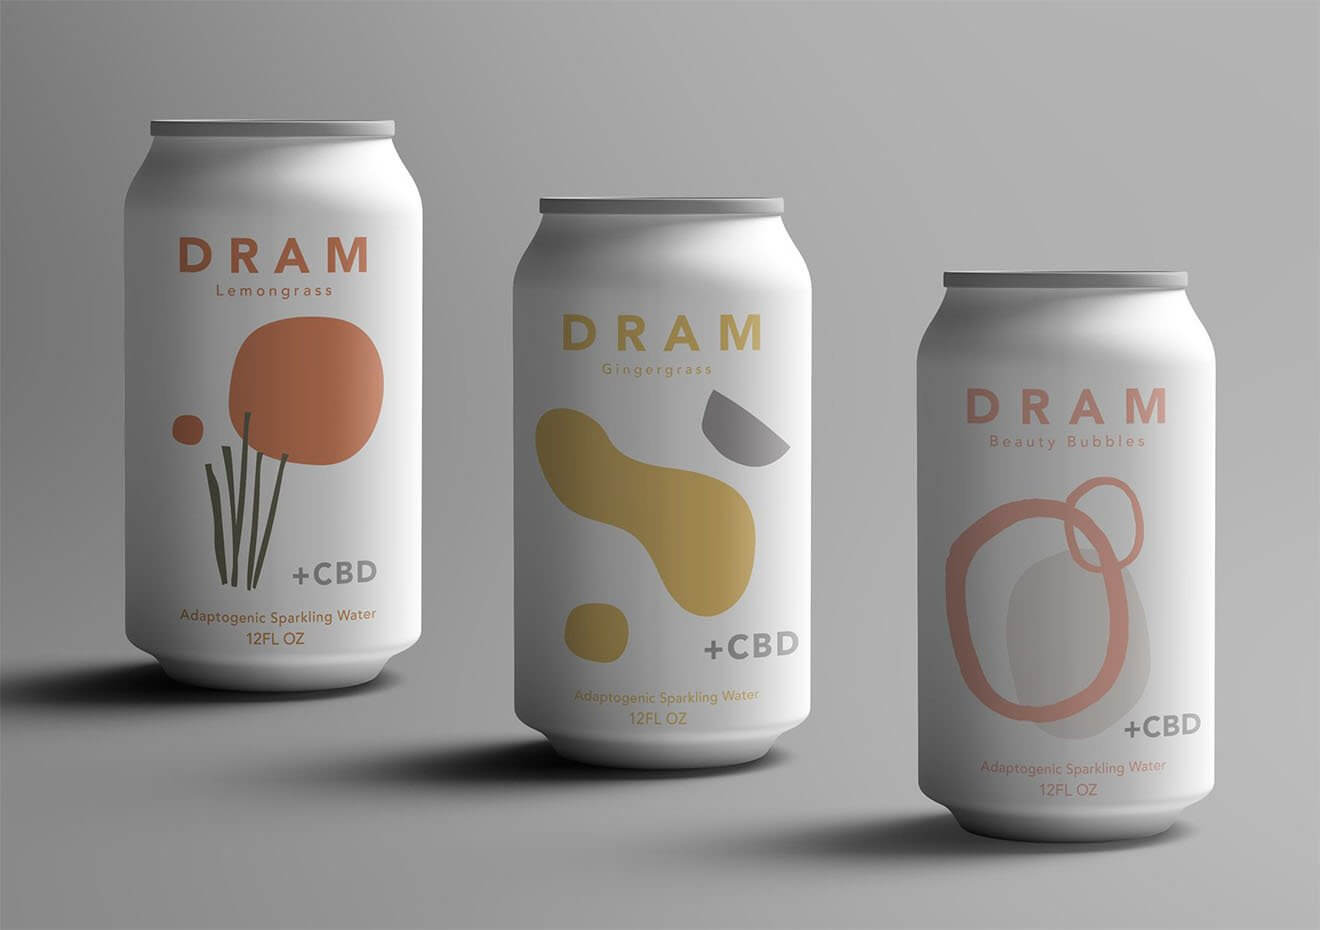 DRAM Apothecary CBD Drinks, can varieties on grey background